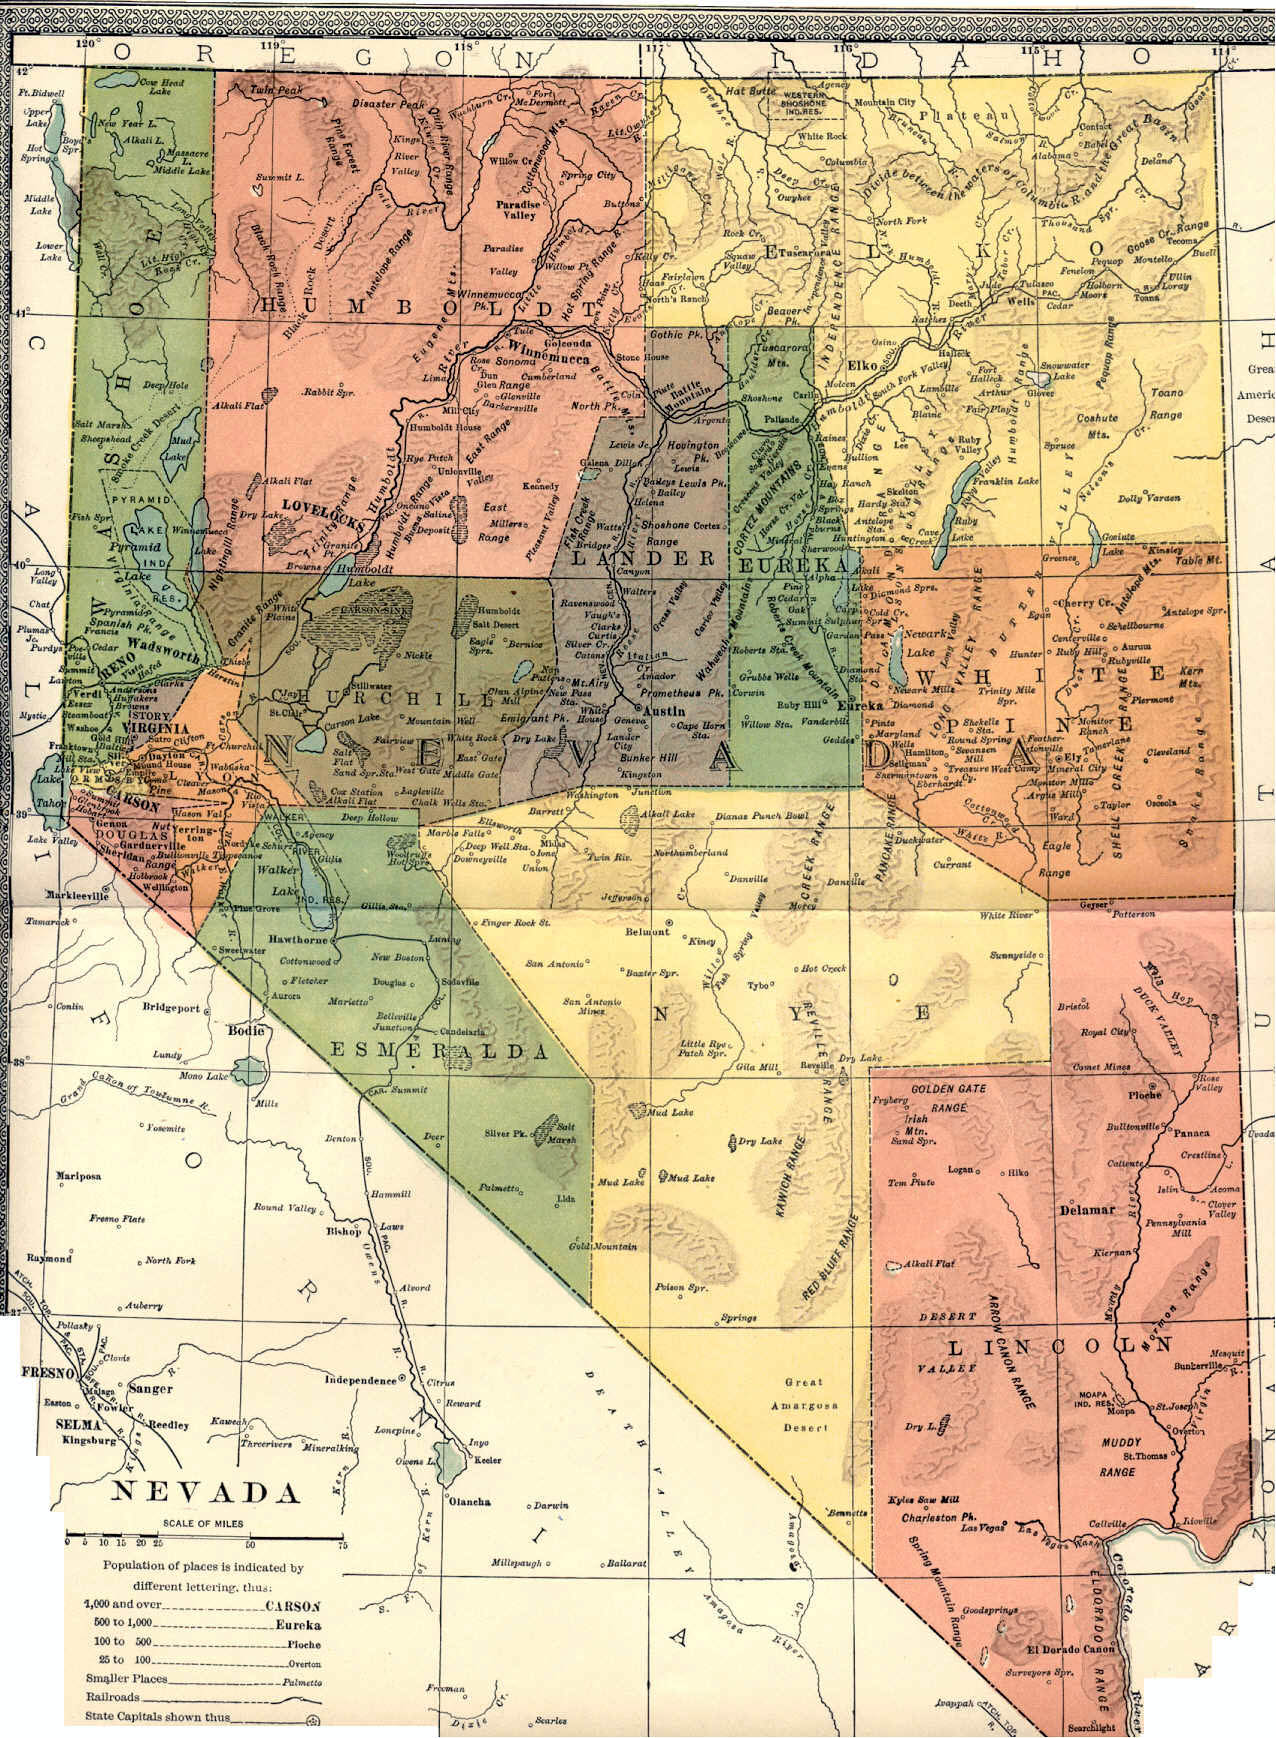 Nevada Maps Nevada Digital Map Library Table Of Contents